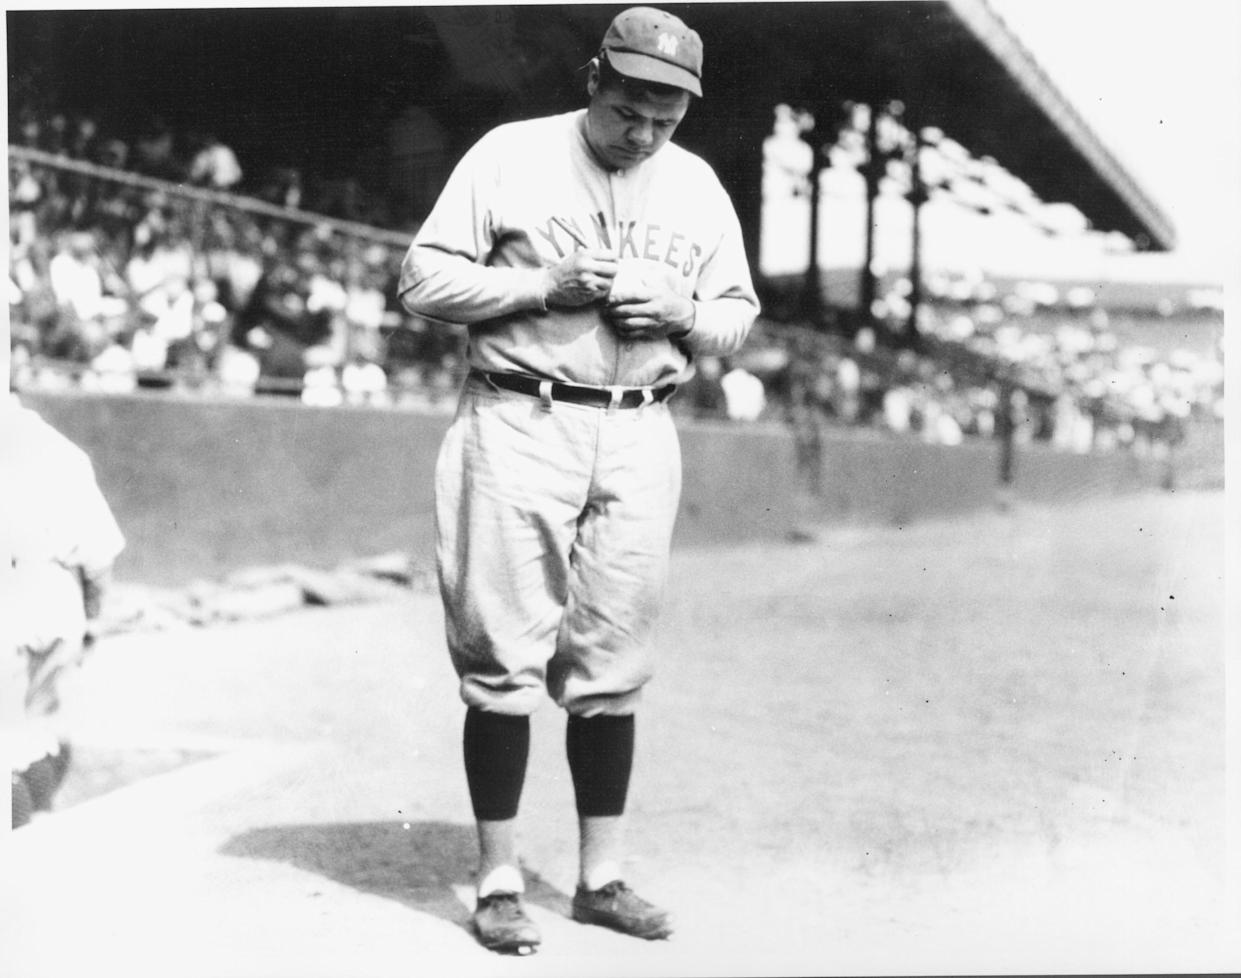 detailed look 804ce be8b1 Babe Ruth jersey sets sports memorabilia record with $5.64 million sale at  auction